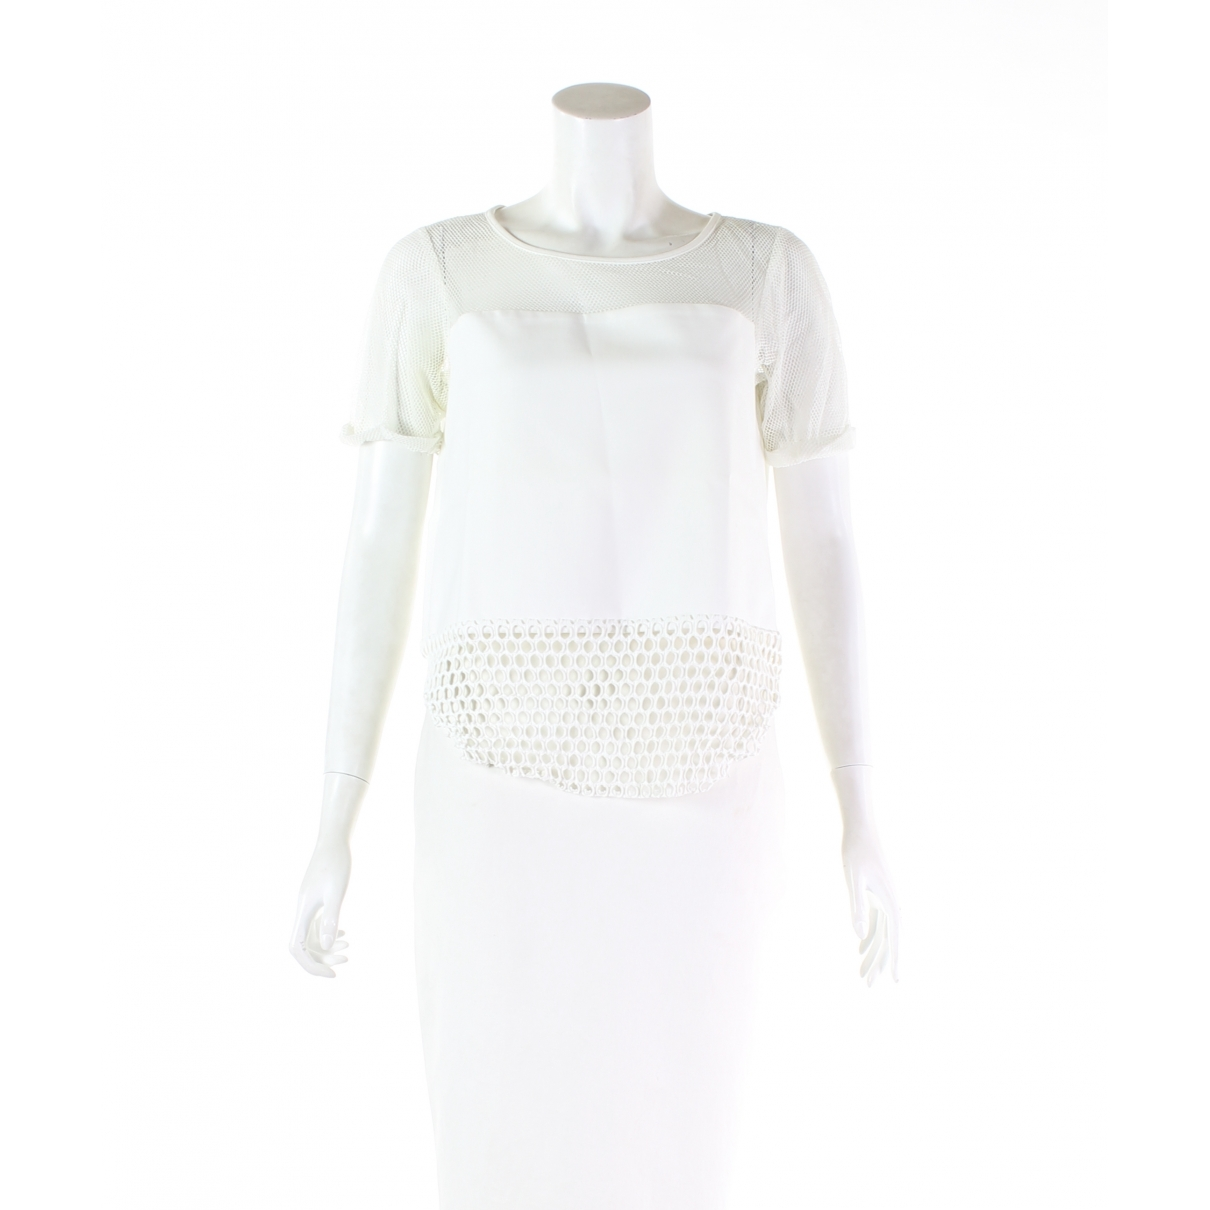 Elizabeth And James \N Top in  Weiss Polyester